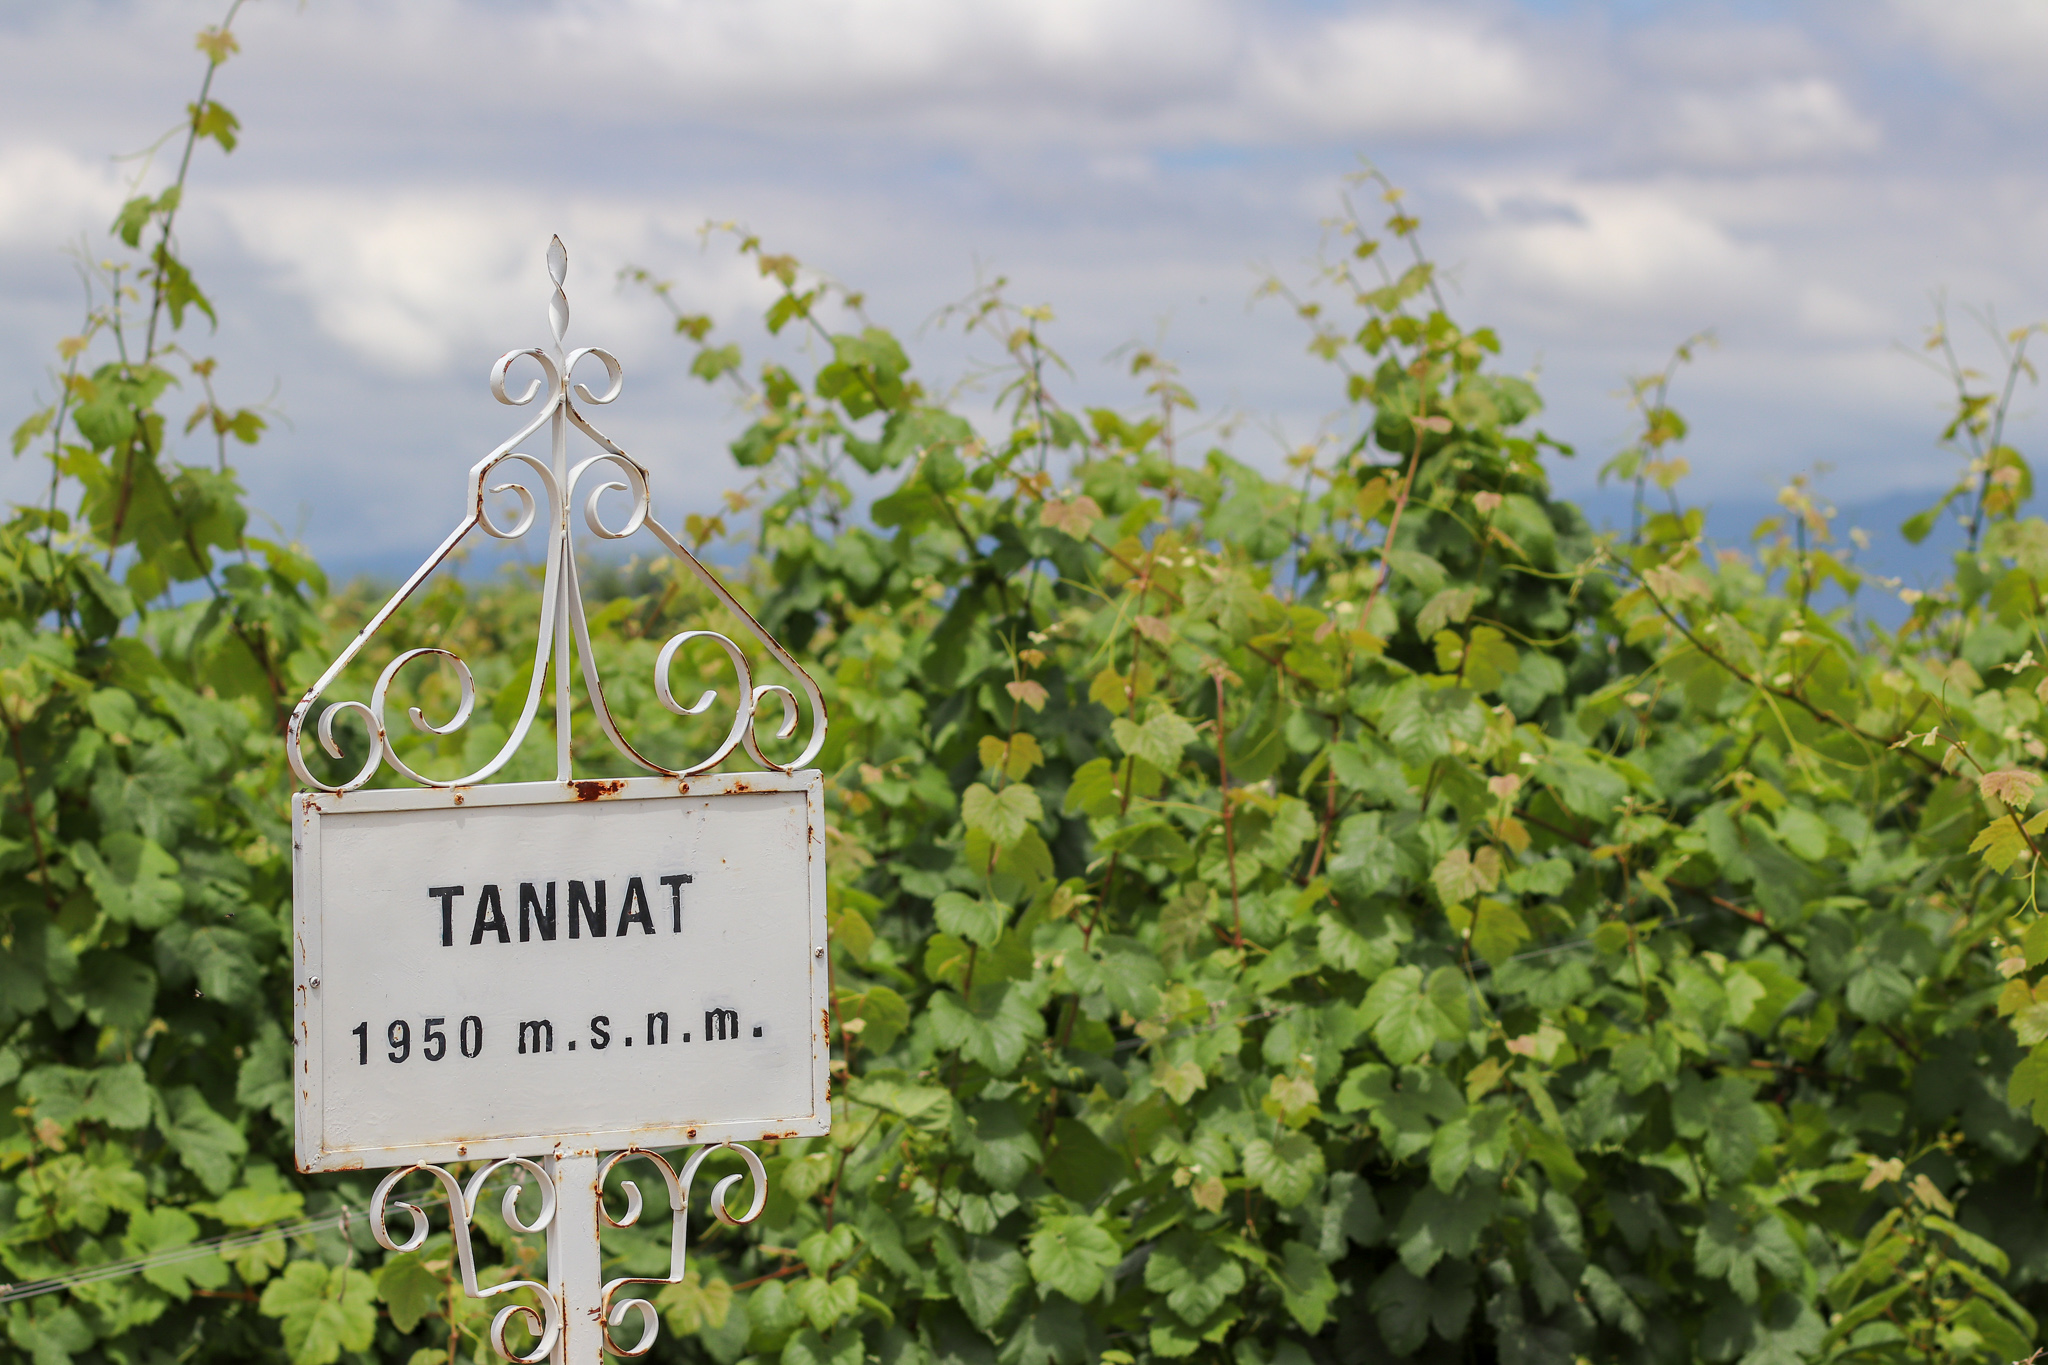 Tannat vines growing in Tarija, Bolivia at an elevation of 1,950 meters (6,397 feet)